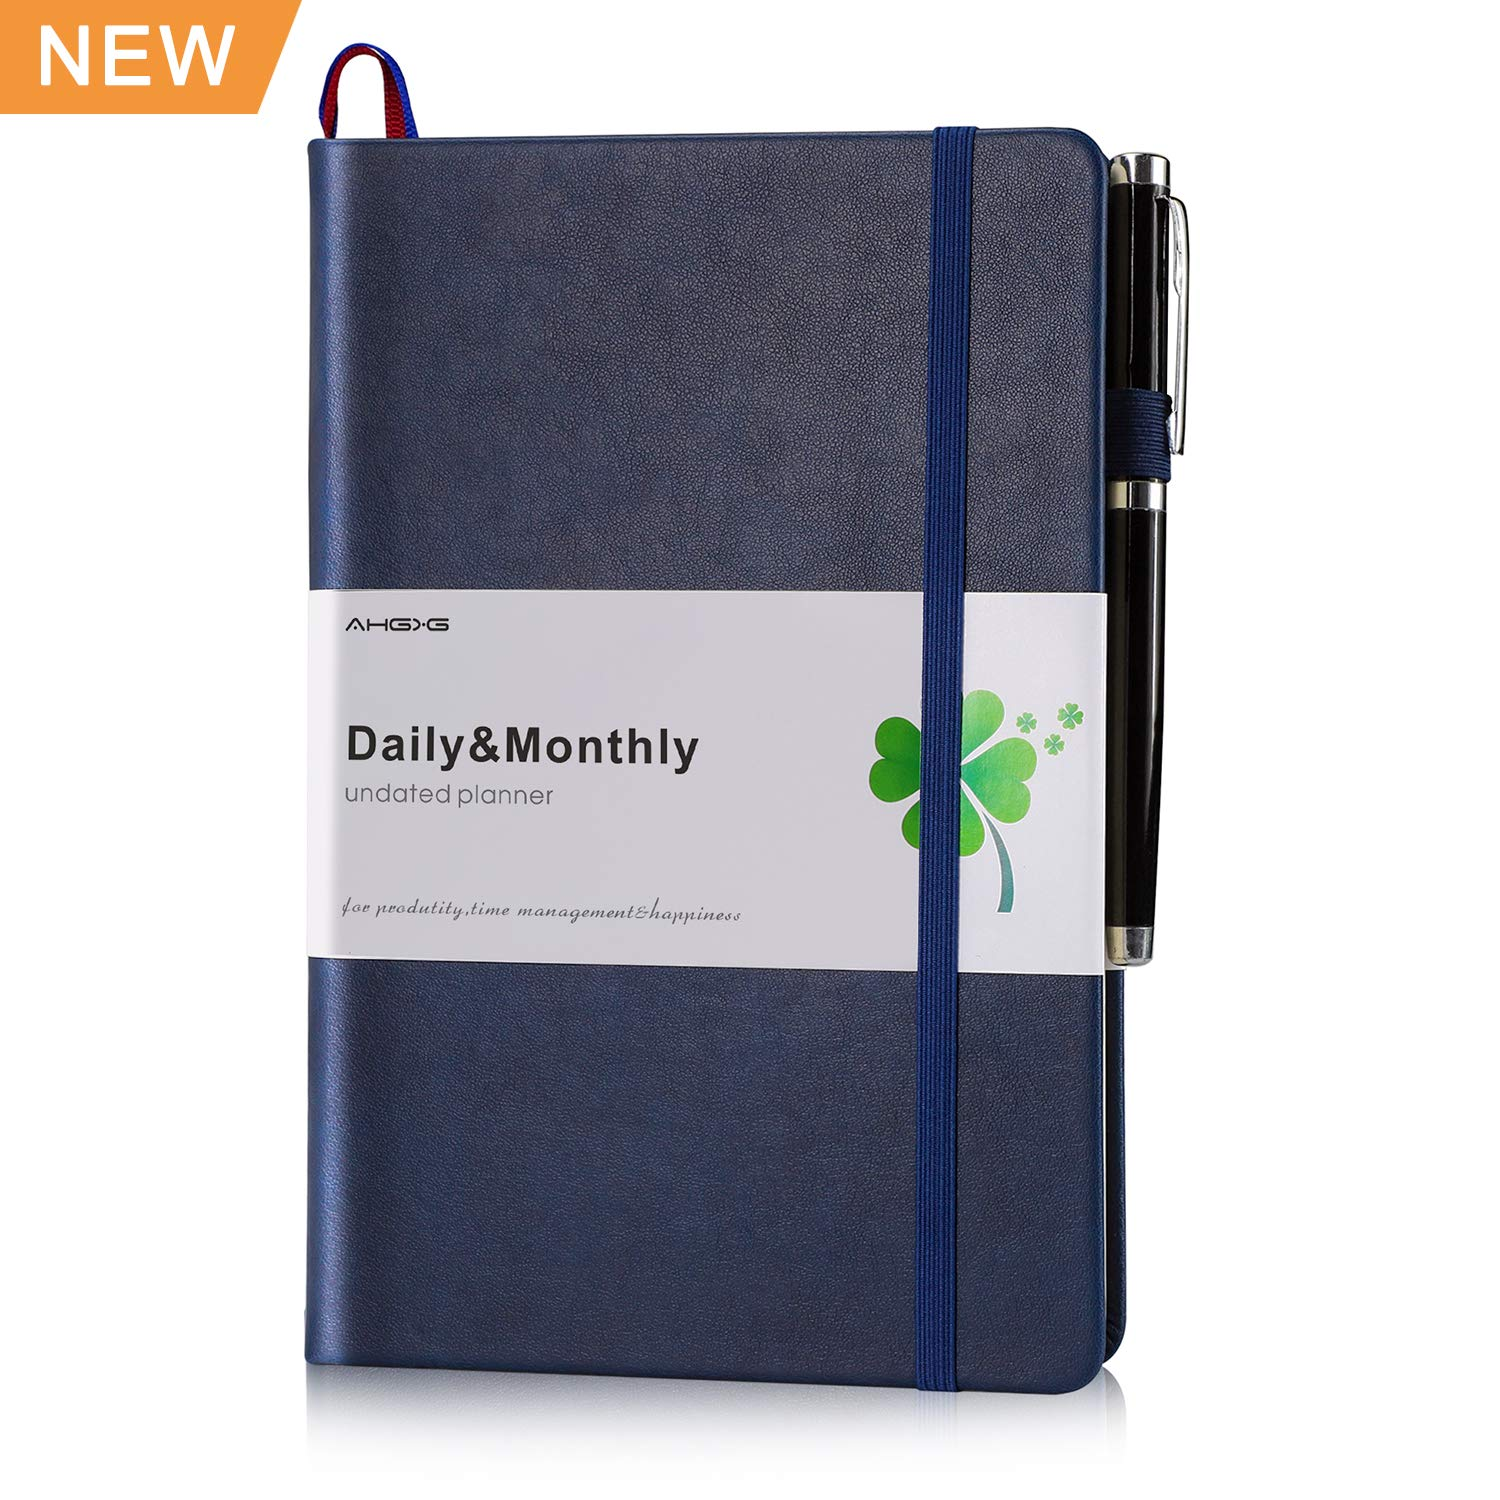 Daily/Monthly Planner, AHGXG Best Daily Academic Planner Organizer Journal, Master Planner for Productivity, Goals&Happiness with Premium Thick Paper, Pen Holder,Inner Pocket,5.7'' x 8.3'', Blue-Undated